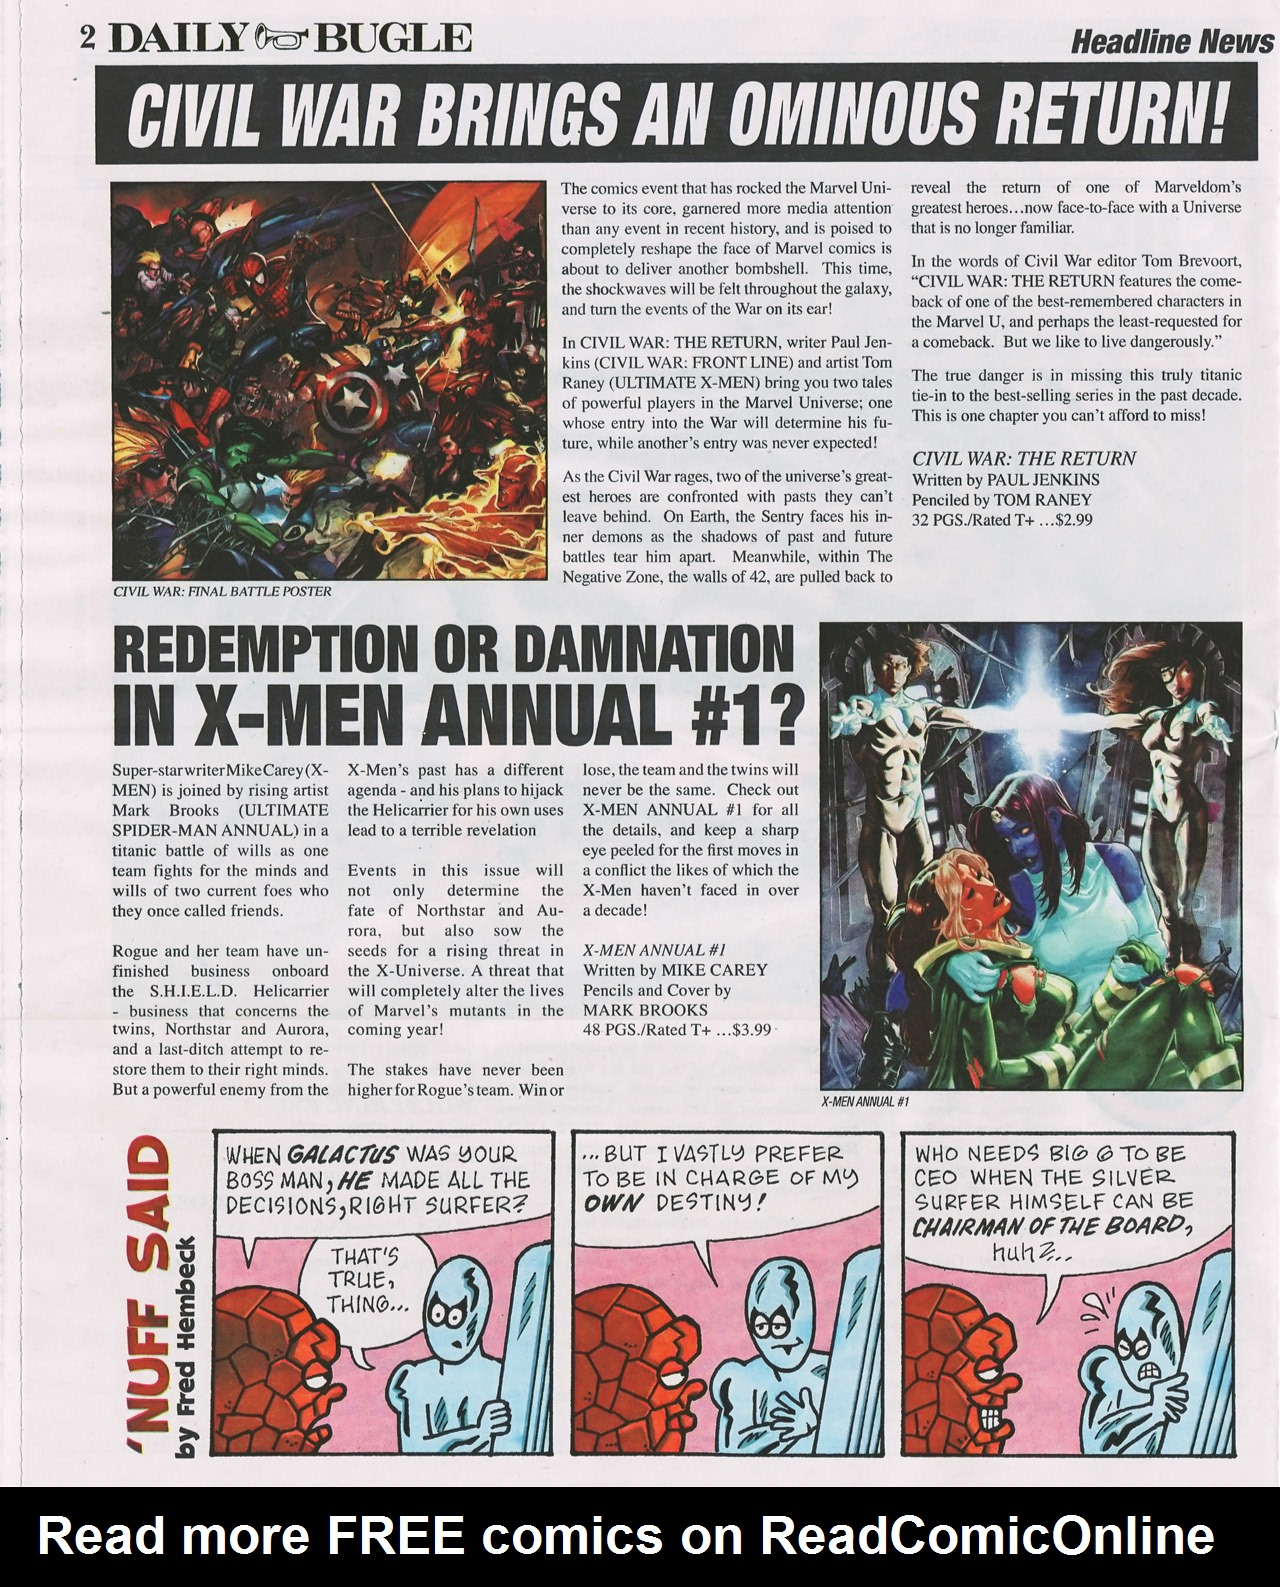 Read online Daily Bugle (2006) comic -  Issue #4 - 3